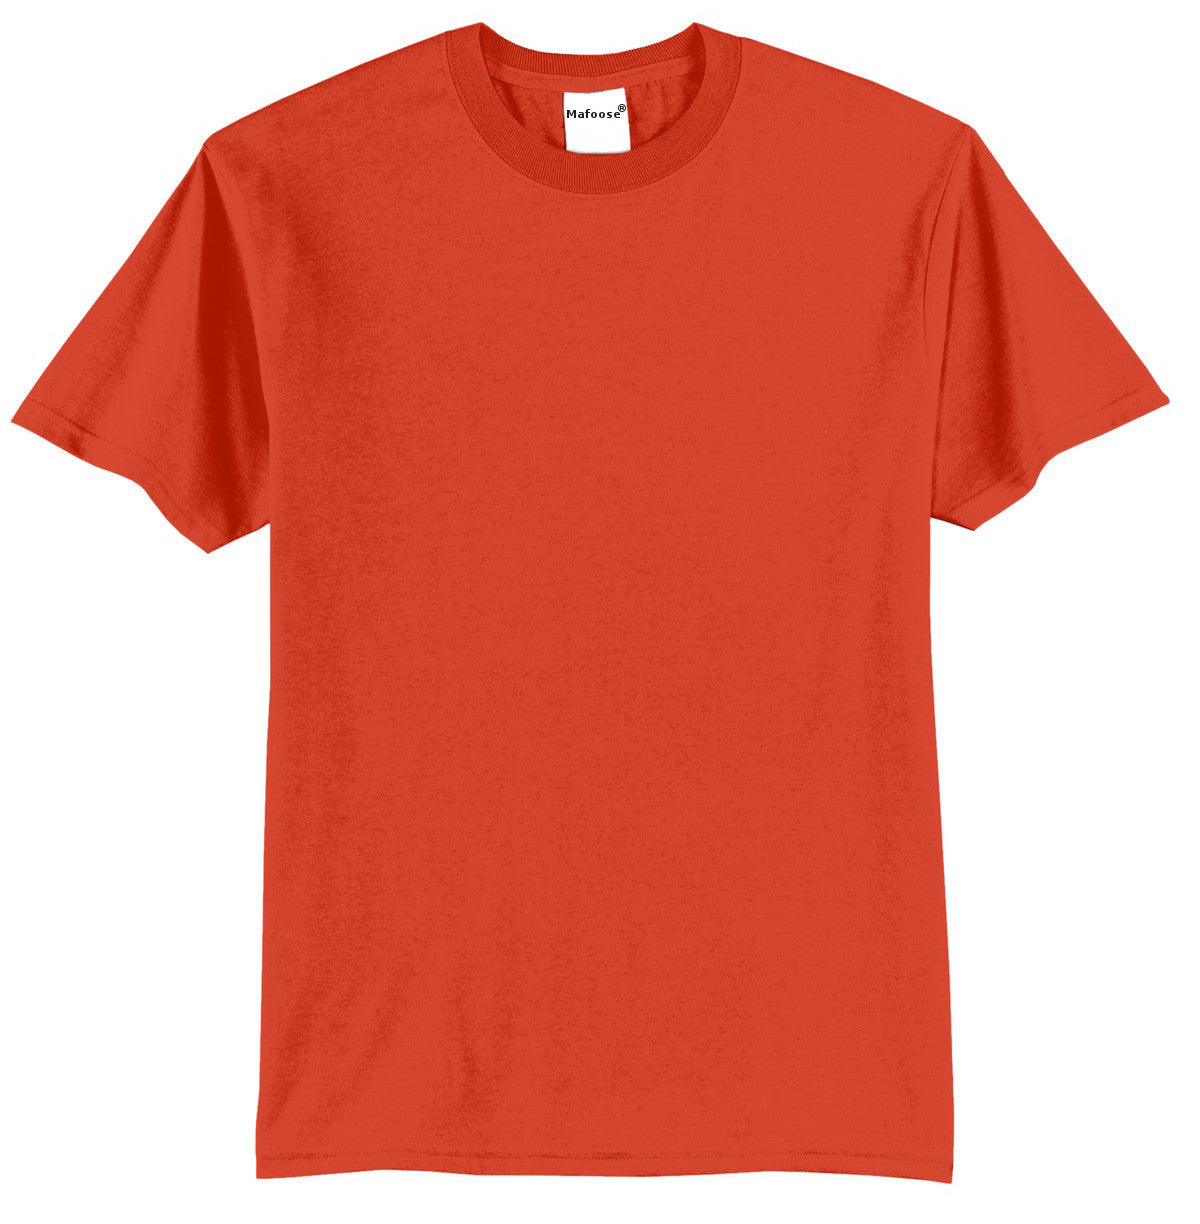 Mafoose Men's Core Blend Tee Shirt Orange